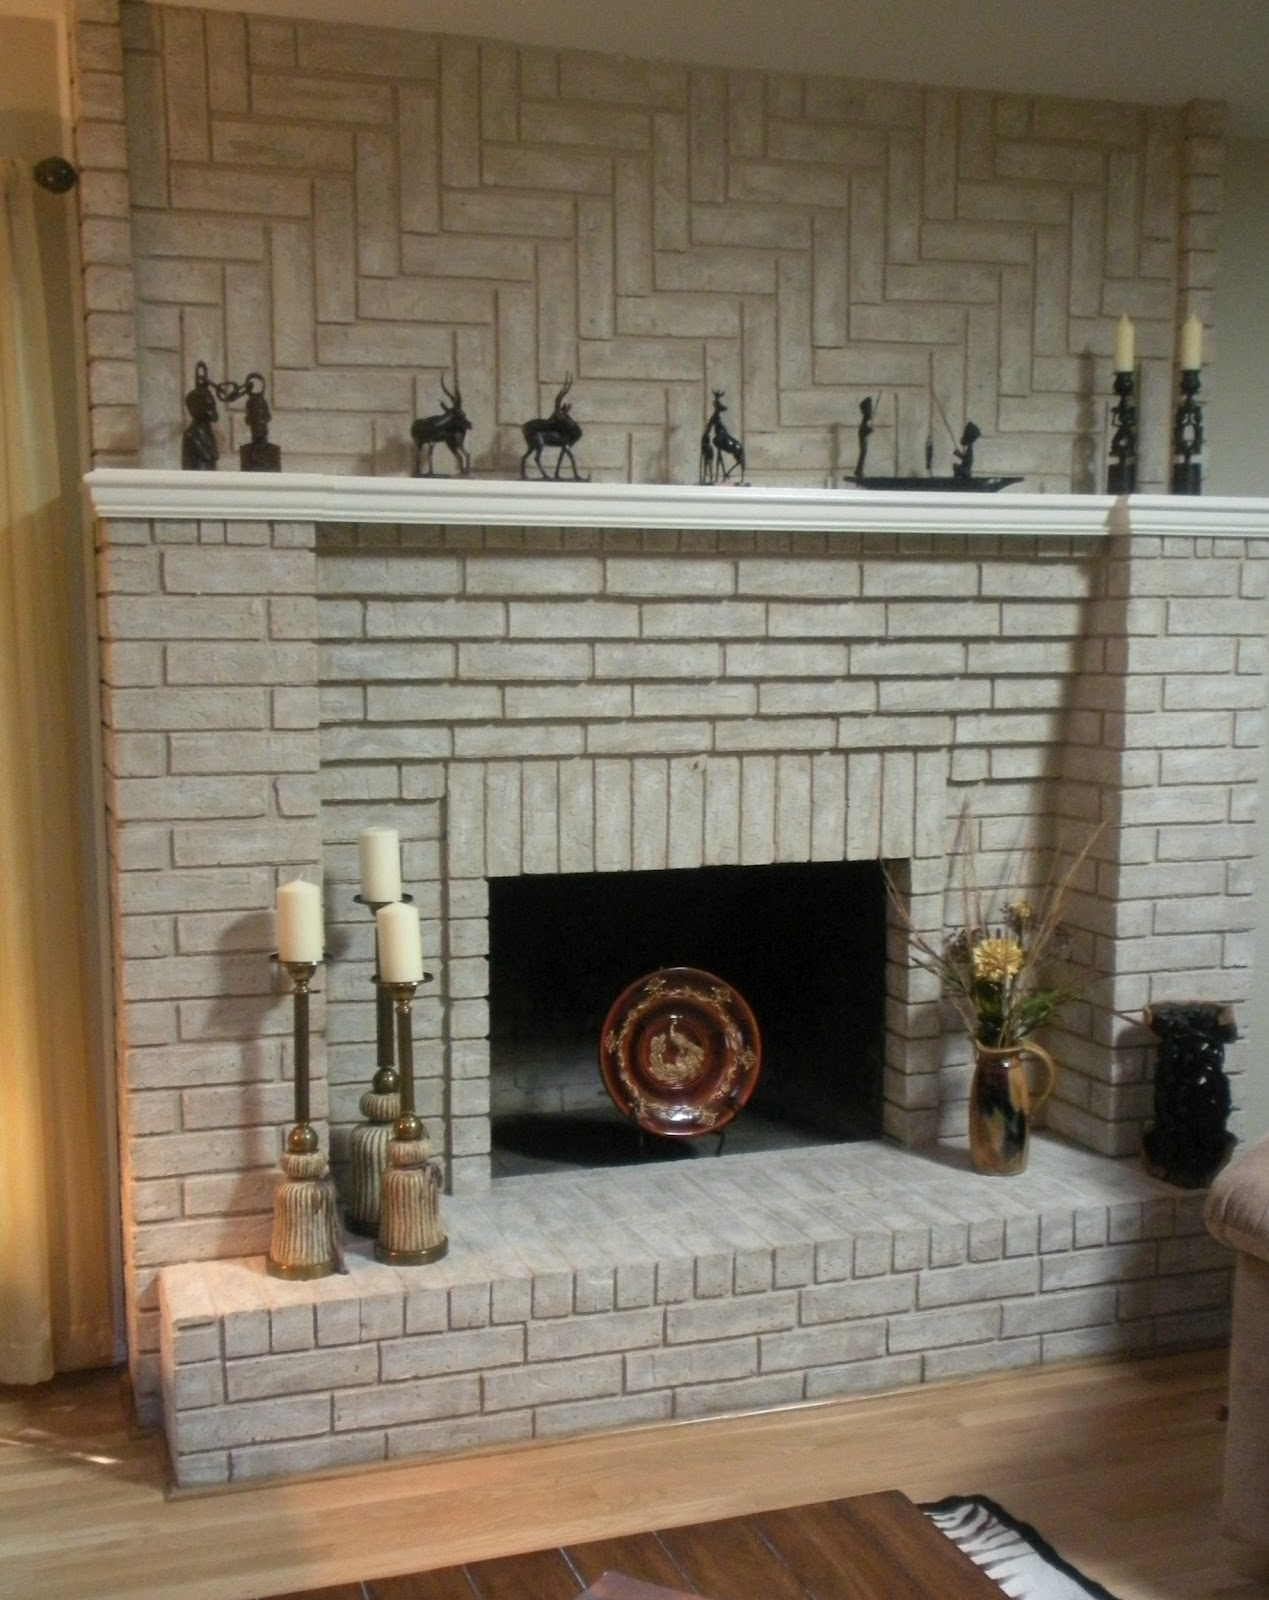 Fireplace Decorating: February 2012